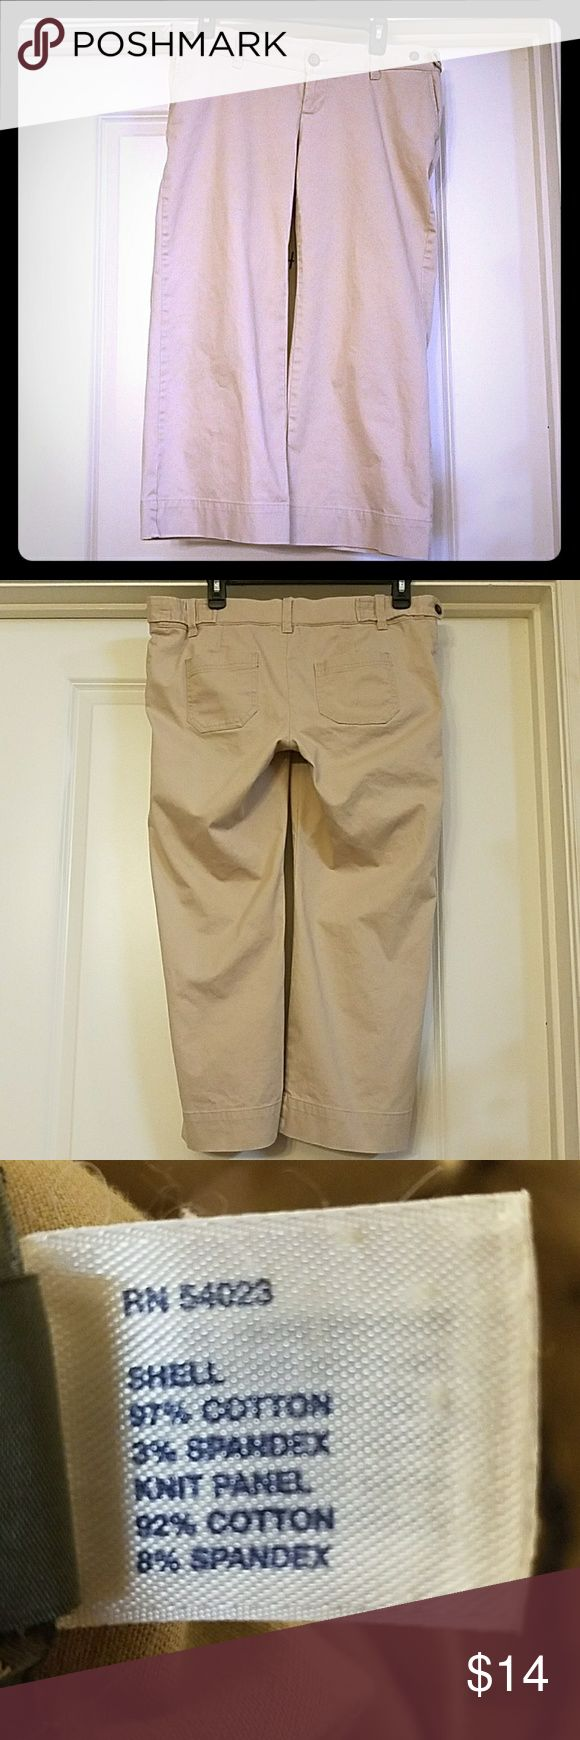 Gap Maternity Back Panel Stretch Khaki Capri Pants Gap Maternity Back Panel Stretch Khaki Capri Pants features two front pockets and two back pockets.Laying flat the waist measures 16 inches across with an elastic back panel. The inseam is 24 inches GAP Pants Capris